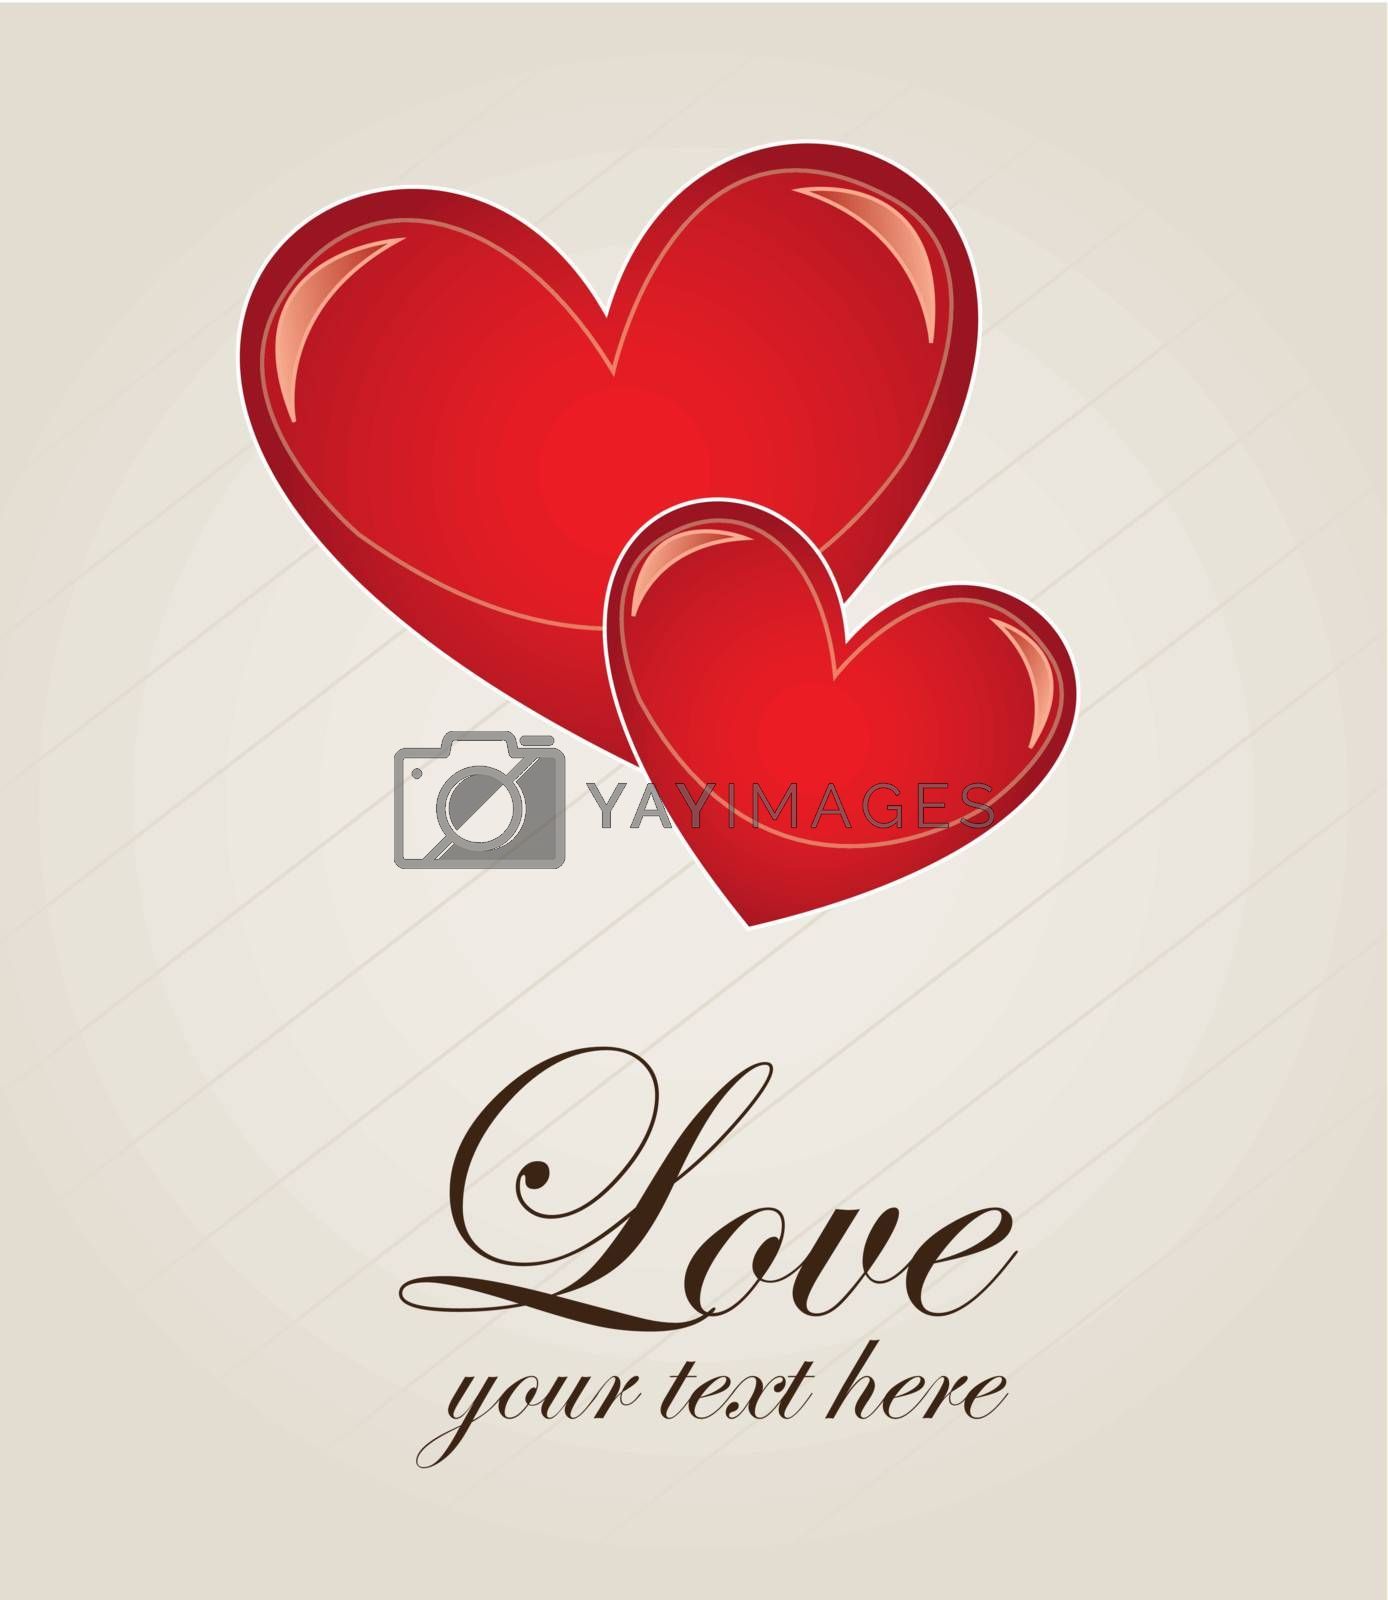 Two hearts of love over white background